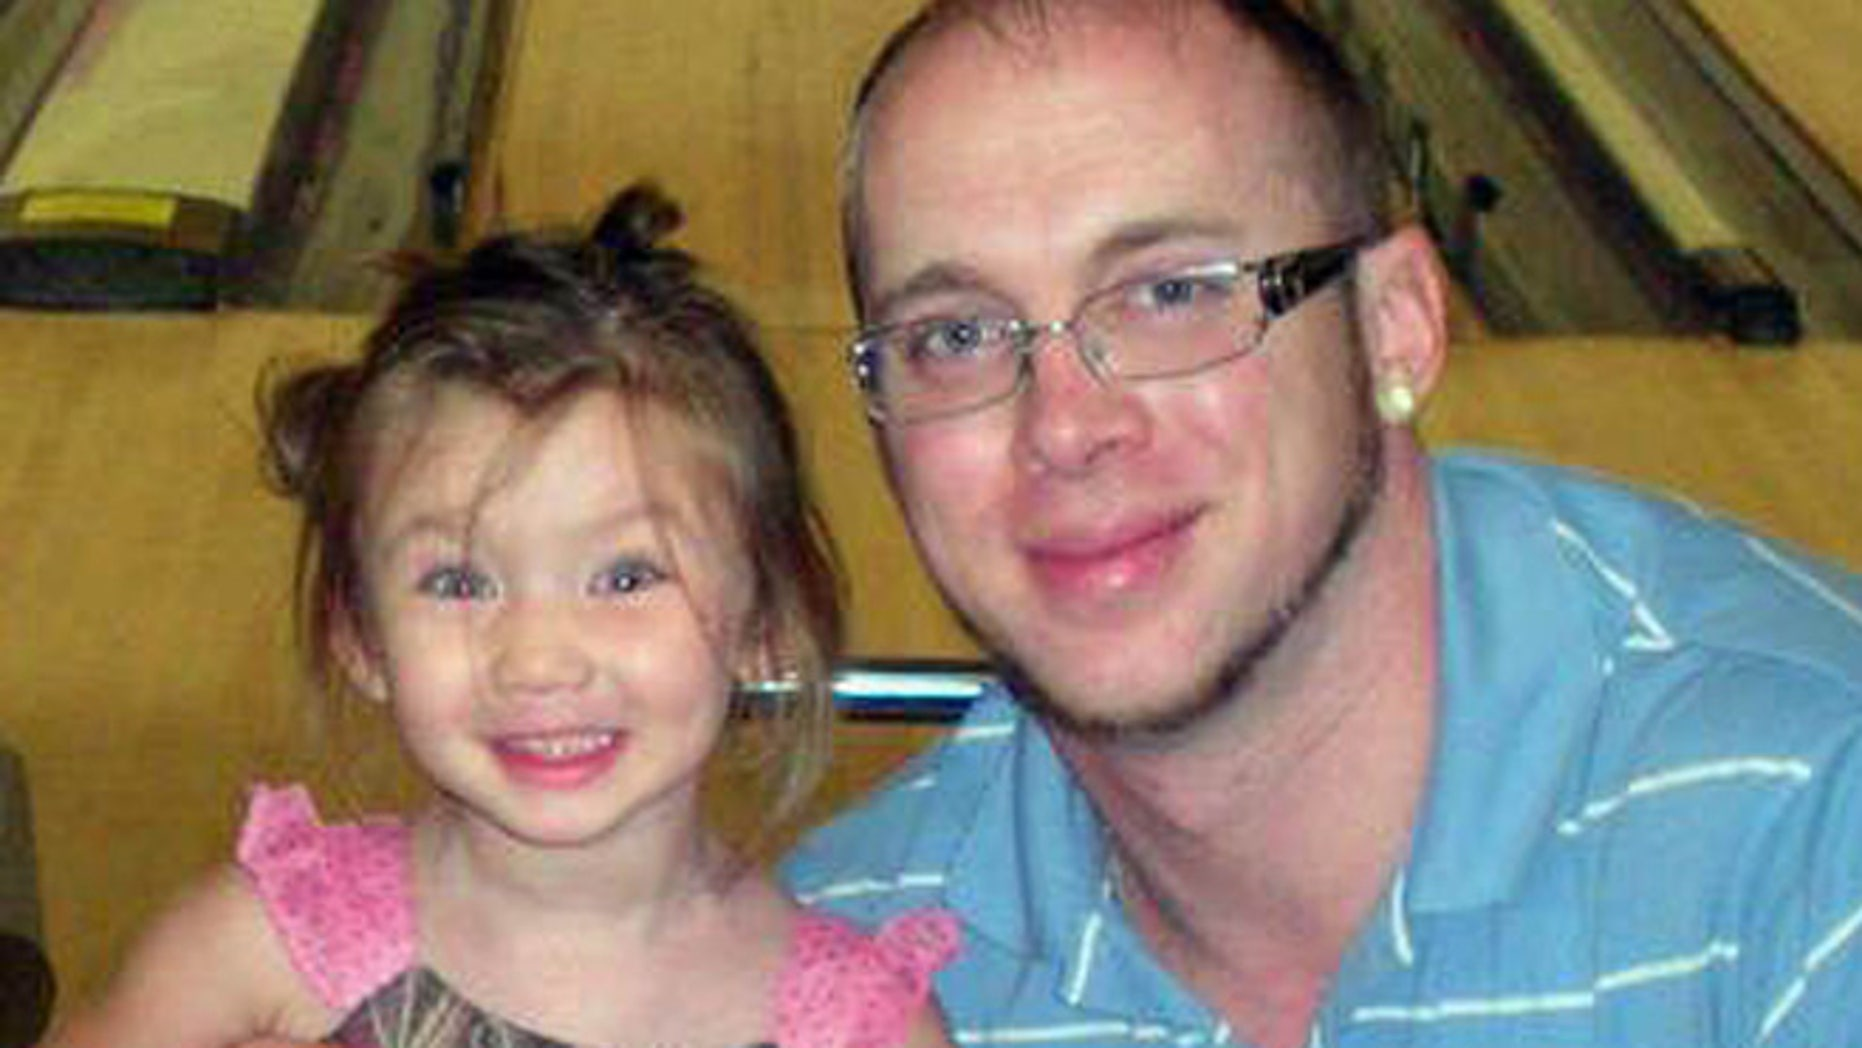 Jordan Arwood is seen with his daughter Chloe. Chloe and her cousin James Levi Caldwell were buried alive and died as a wall of dirt collapsed on them Sunday April 7, 2013.